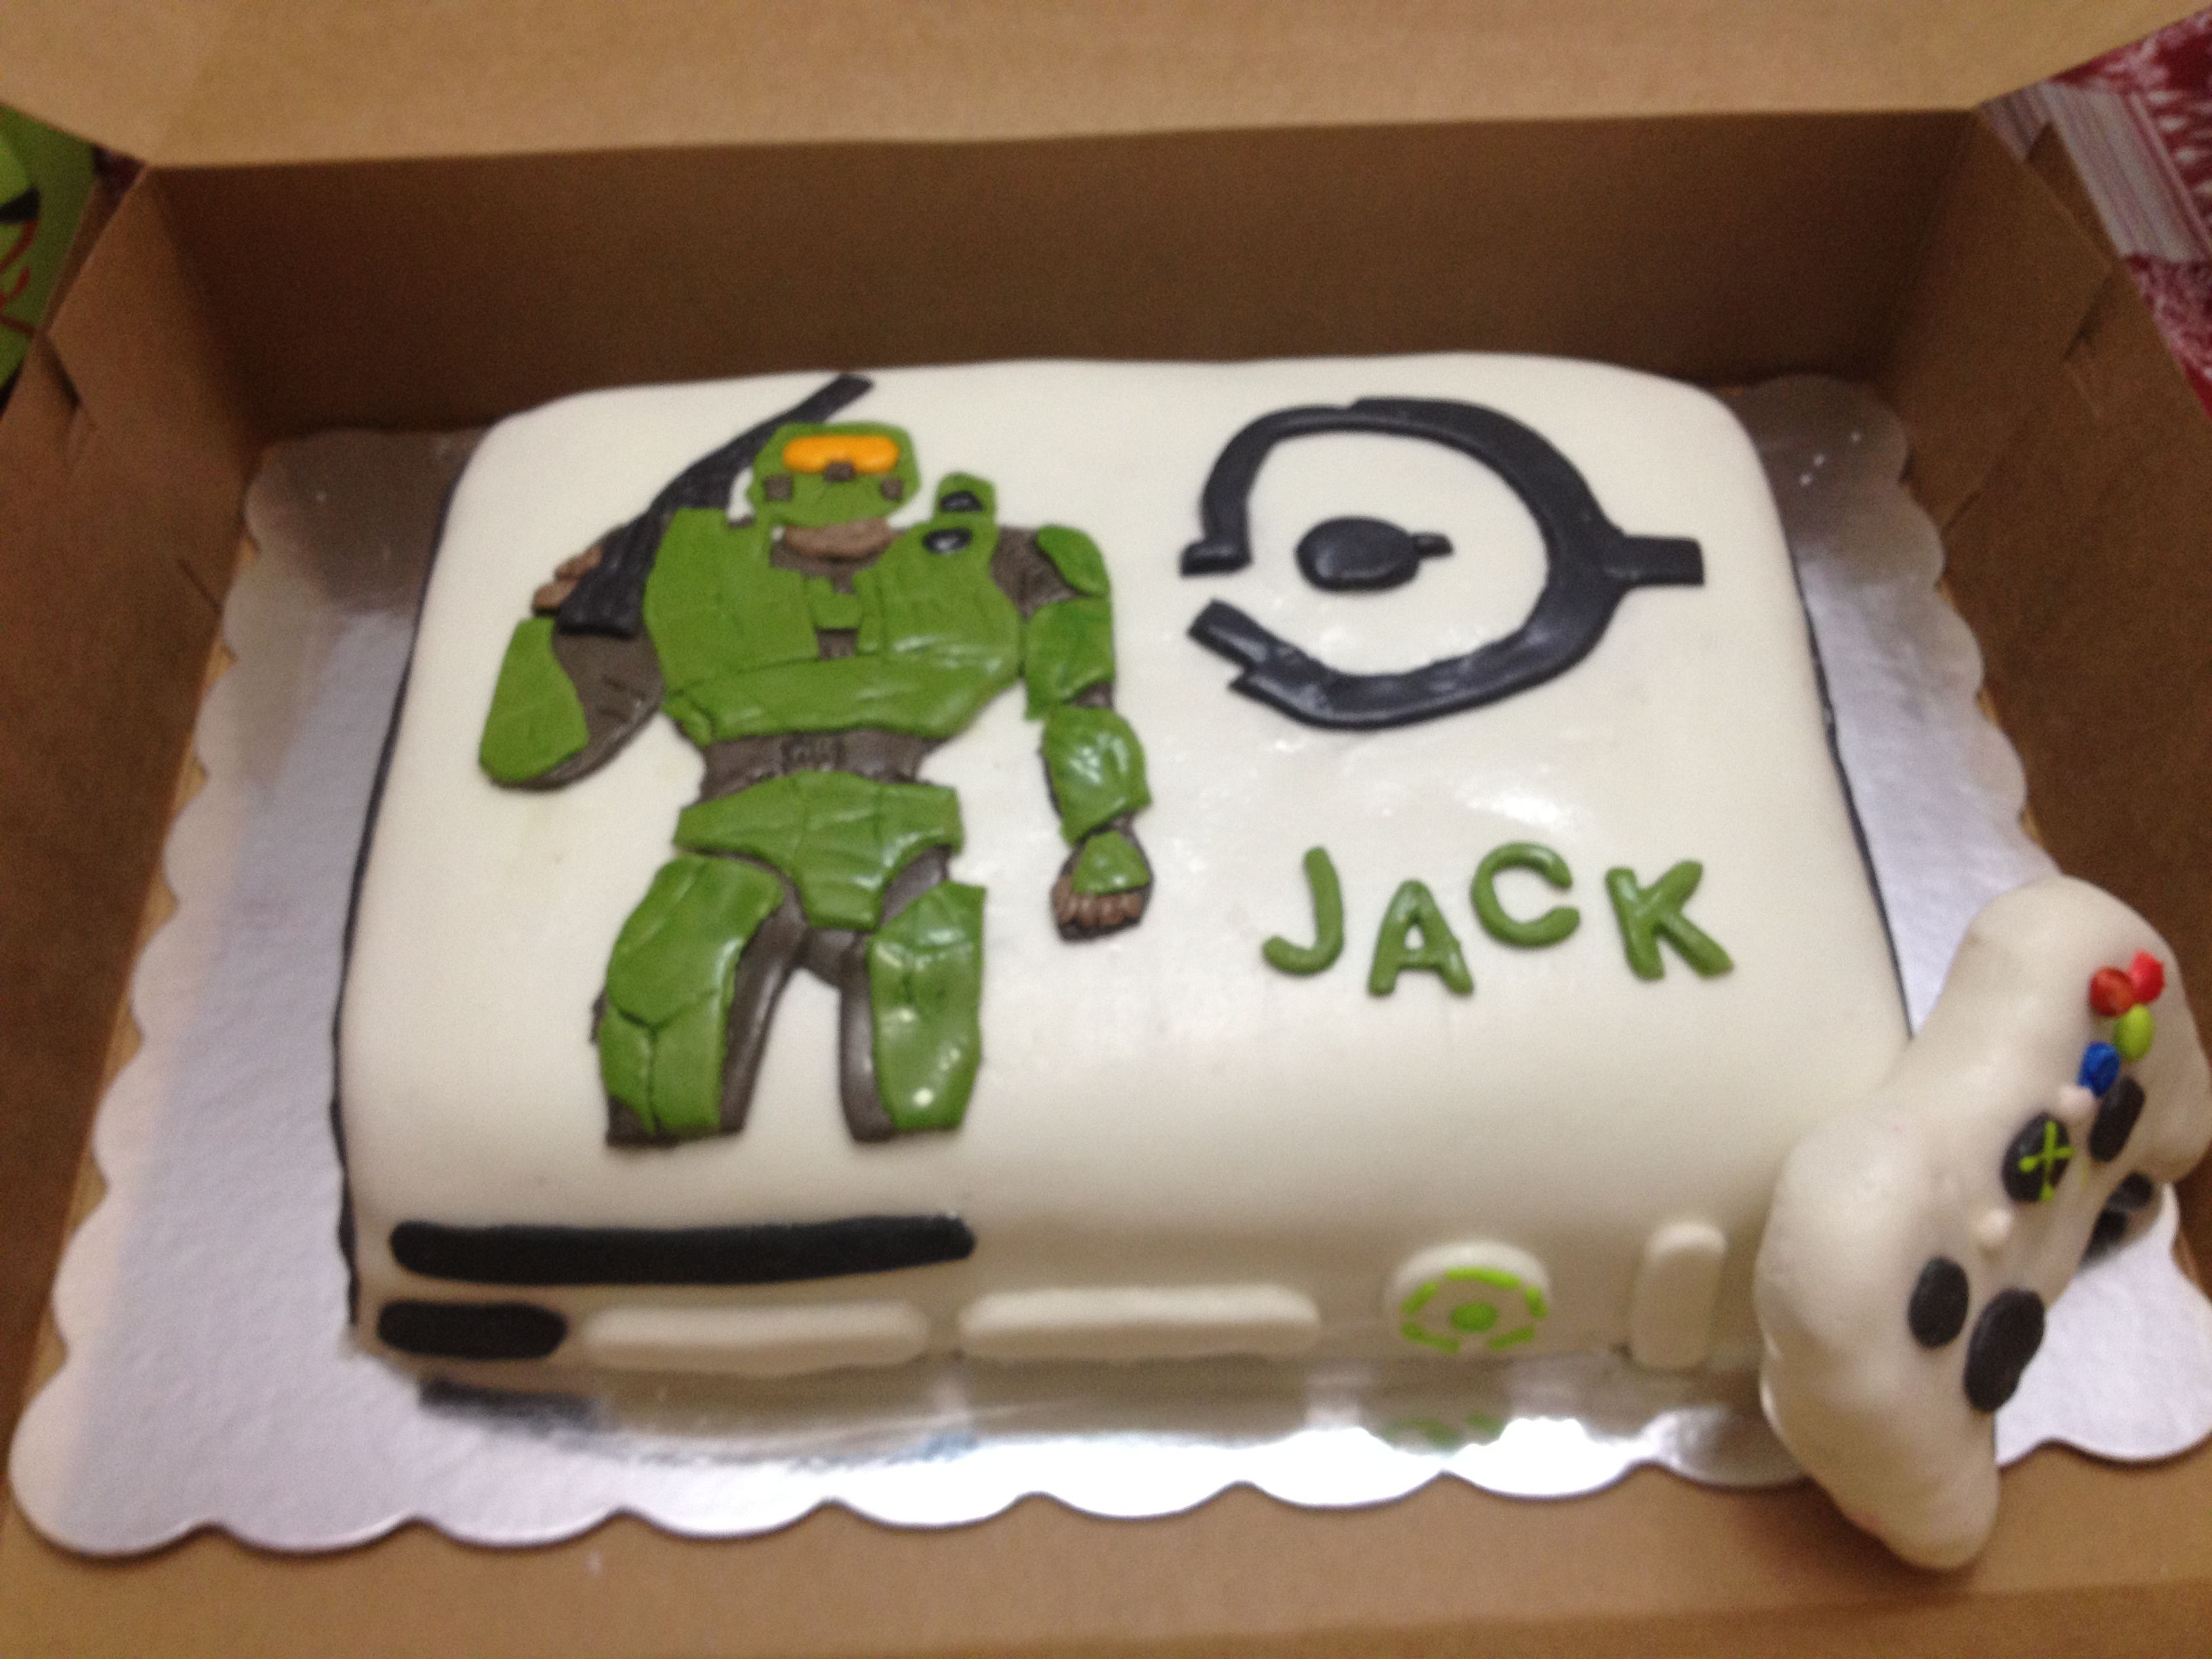 X Box Halo Cake Cakes Ive Made Pinterest Halo cake Cake and